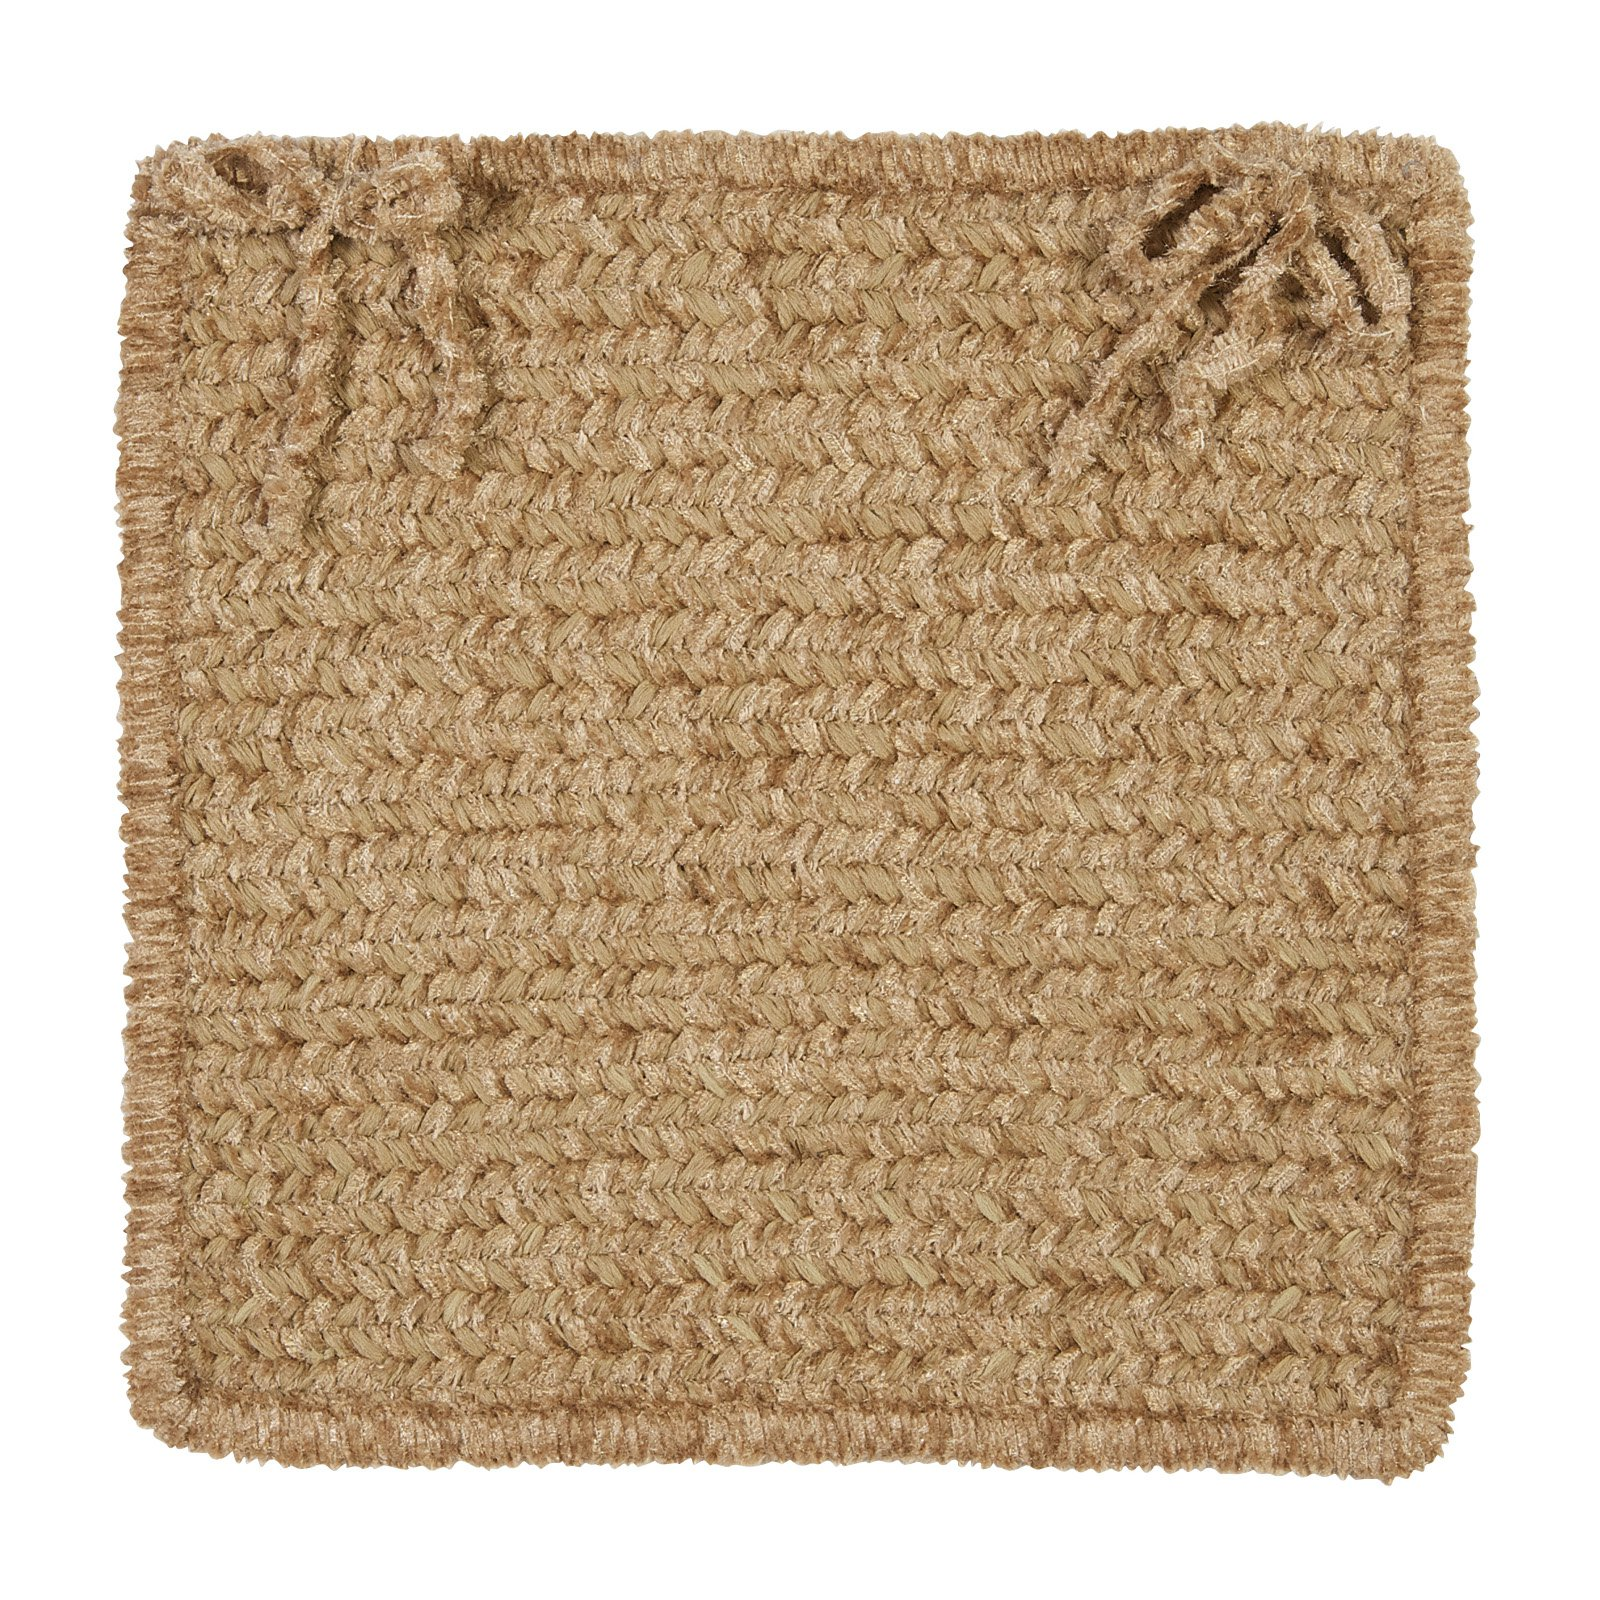 Colonial Mills Simple Chenille Chair Pad 15 x 15 in. by Colonial Mills